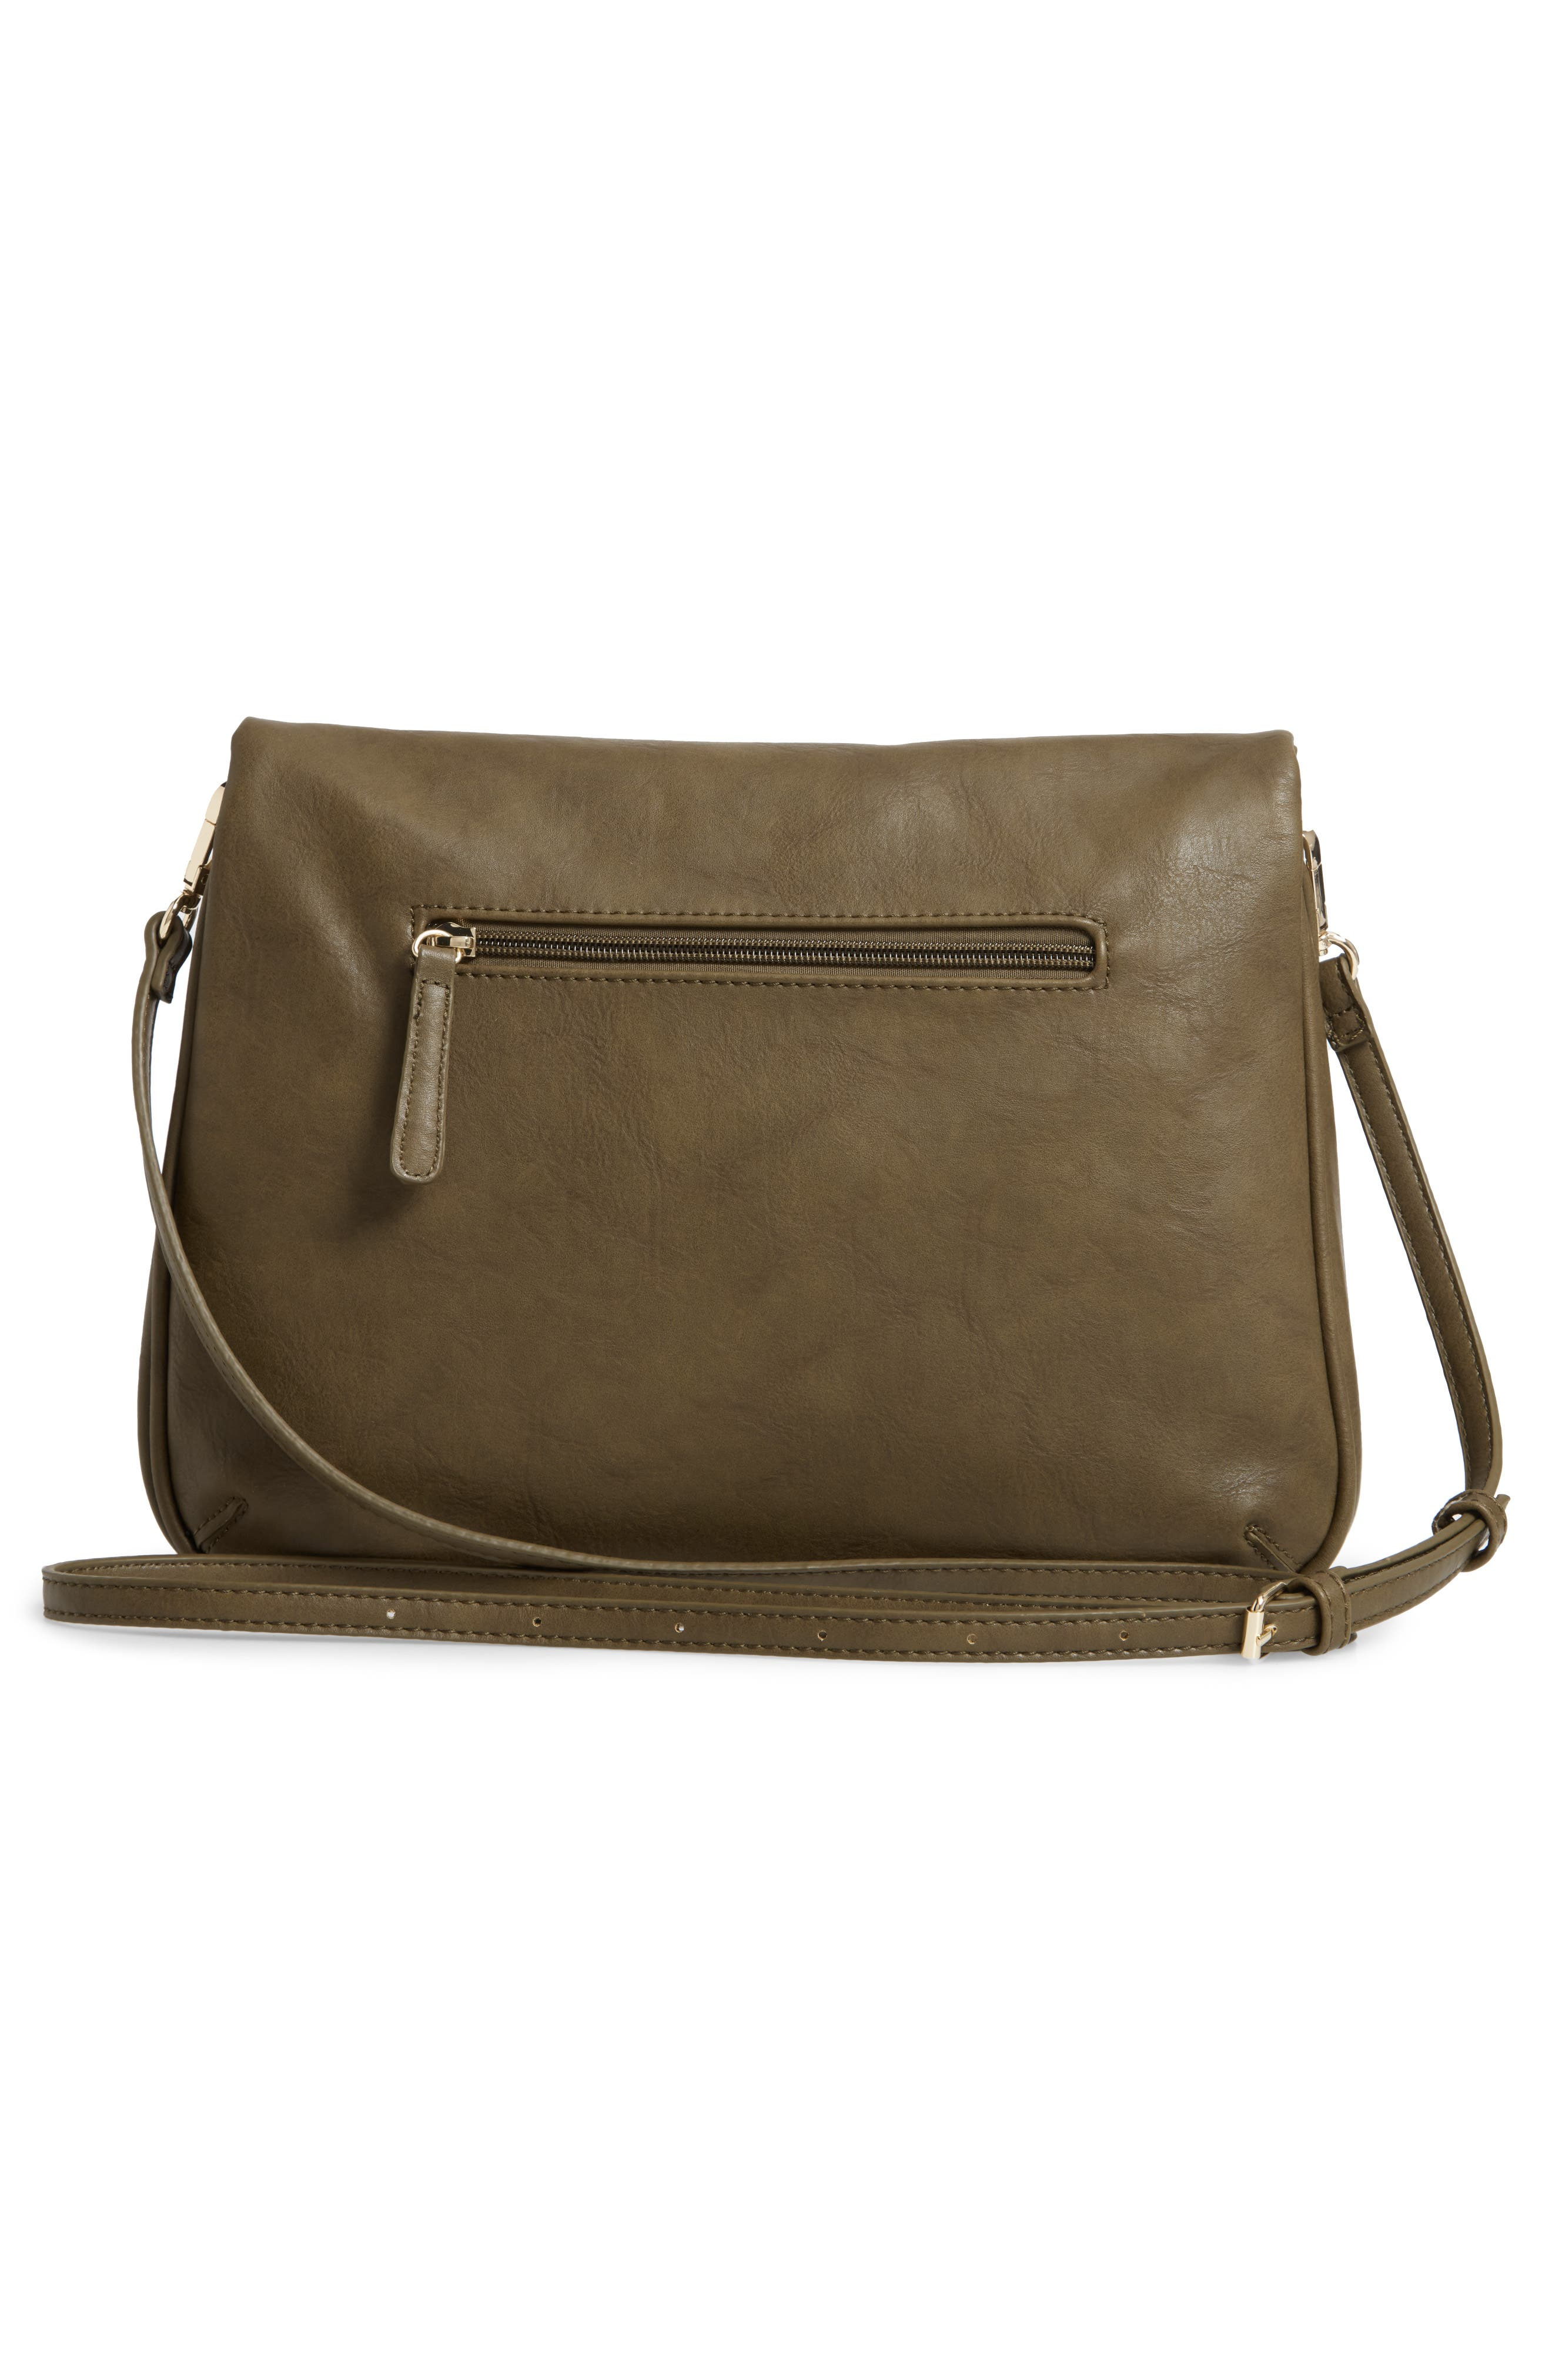 Foldover Crossbody Bag,                             Alternate thumbnail 3, color,                             320